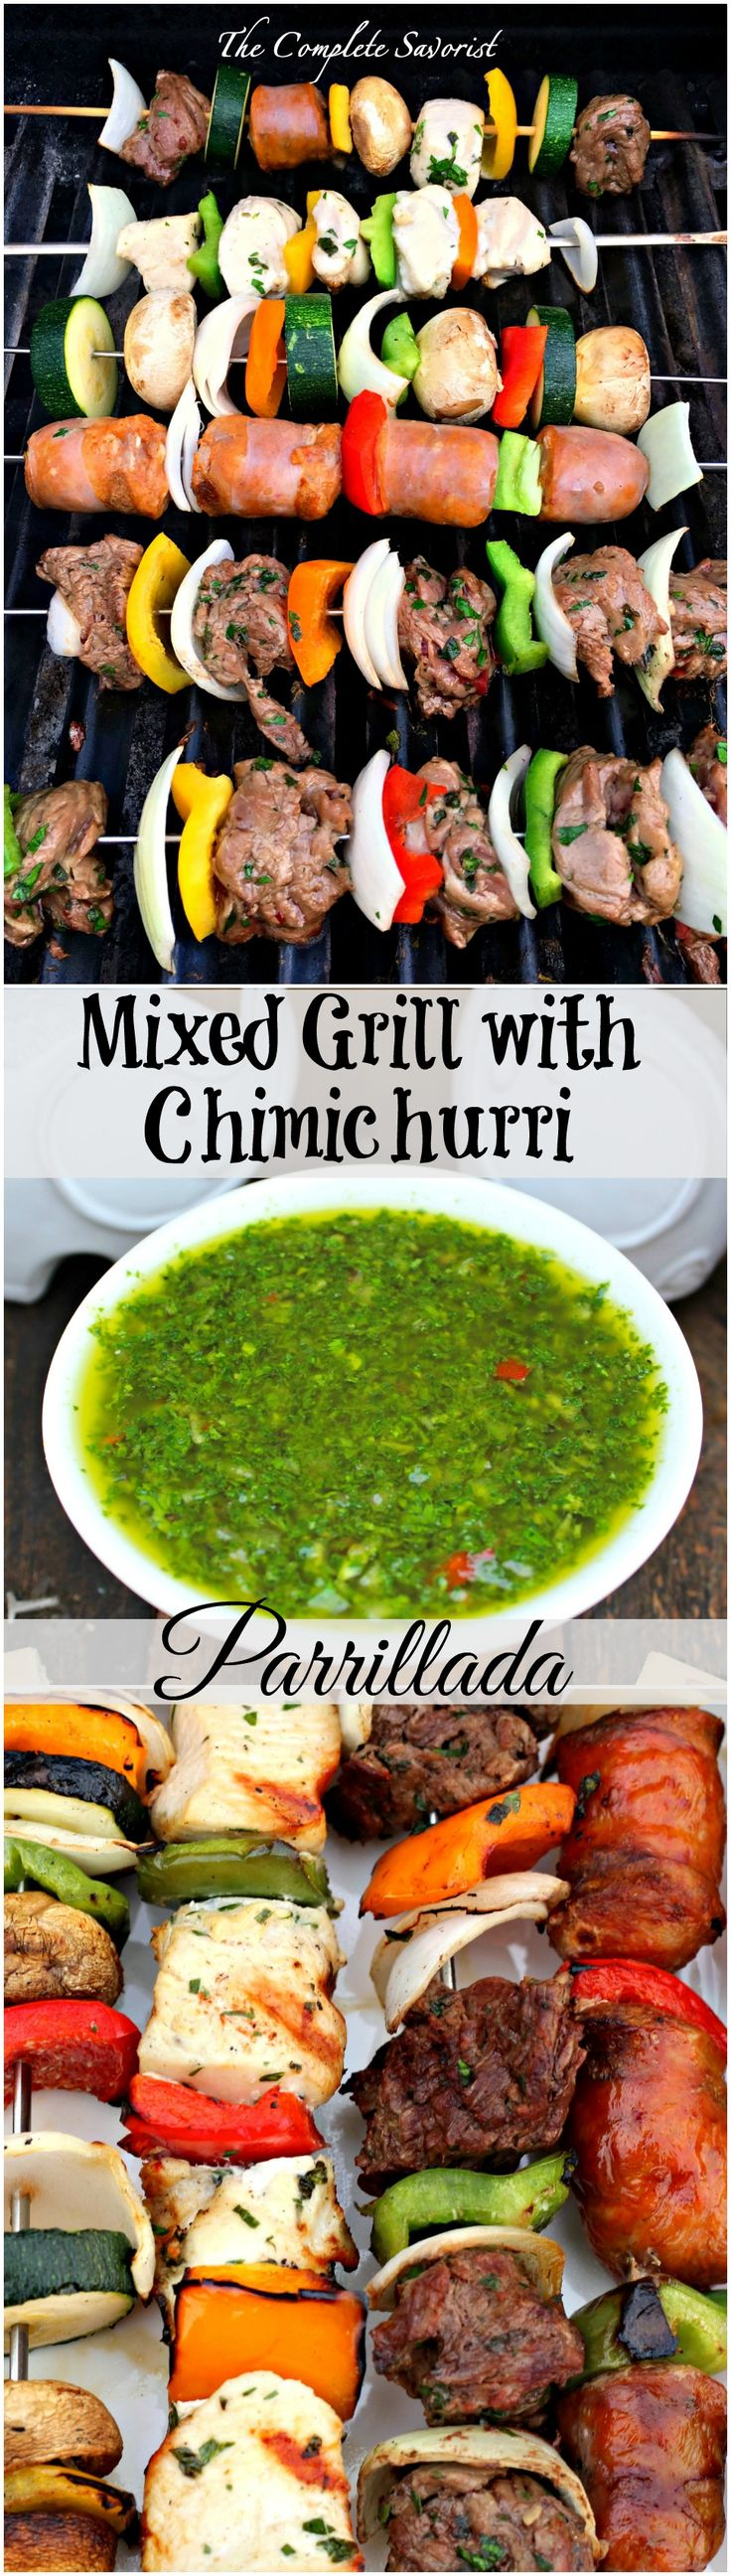 Msg 4 21+ Mixed Grill with Chimichurri Parrillada ~ Latin-inspired grilled skewers of steak, chicken, sausage and vegetables with fresh chimichurri ~ The Complete Savorist #SummerVino #VeranoSutter ad @sutterhome